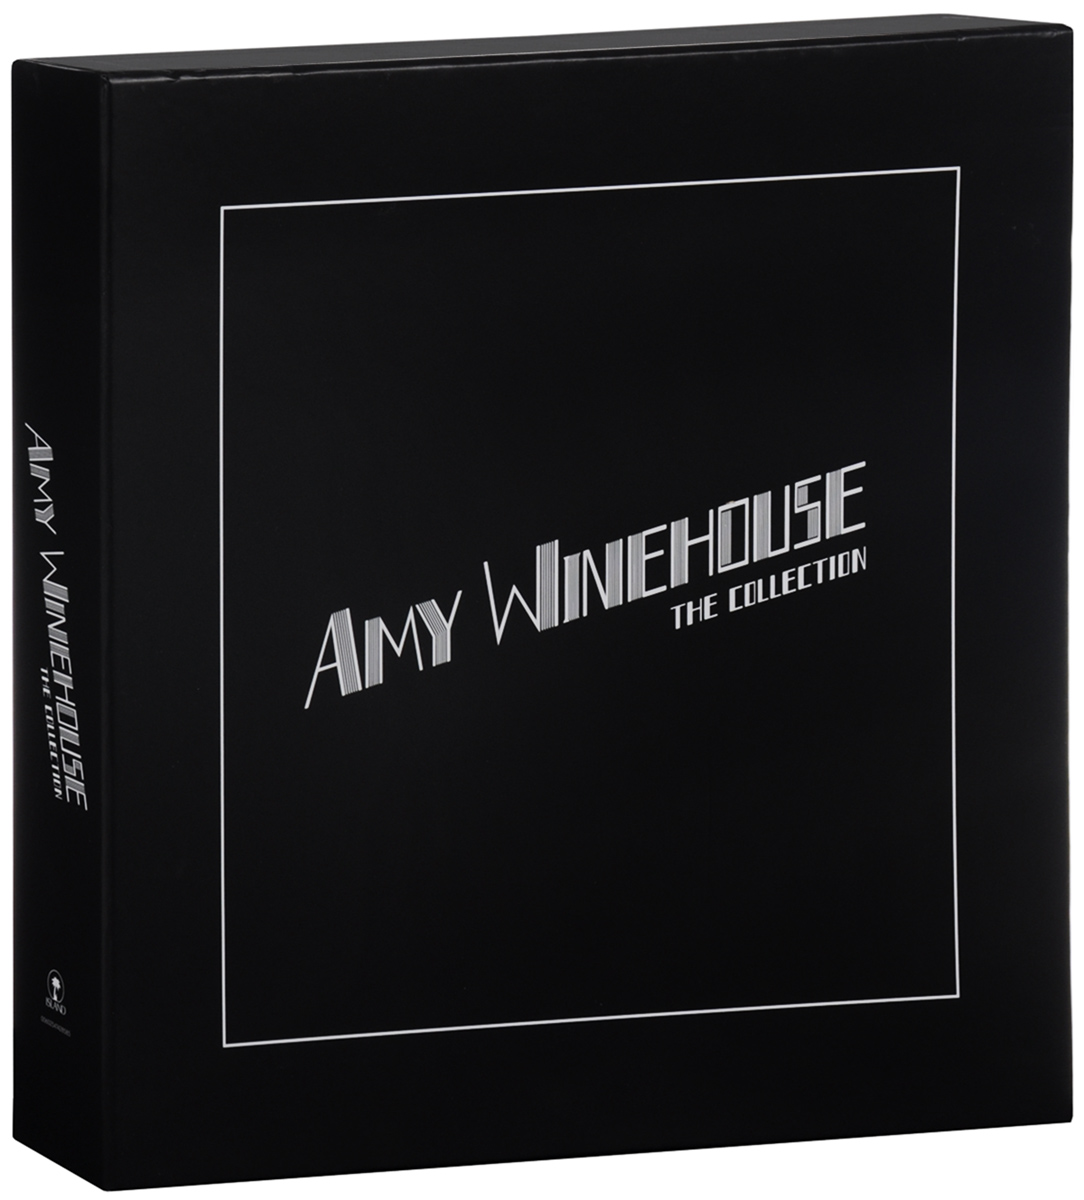 Эми Вайнхаус Amy Winehouse. The Collection. Deluxe Vinyl Boxset (8 LP) морозильный шкаф love the snow 1 2 1 5 1 8